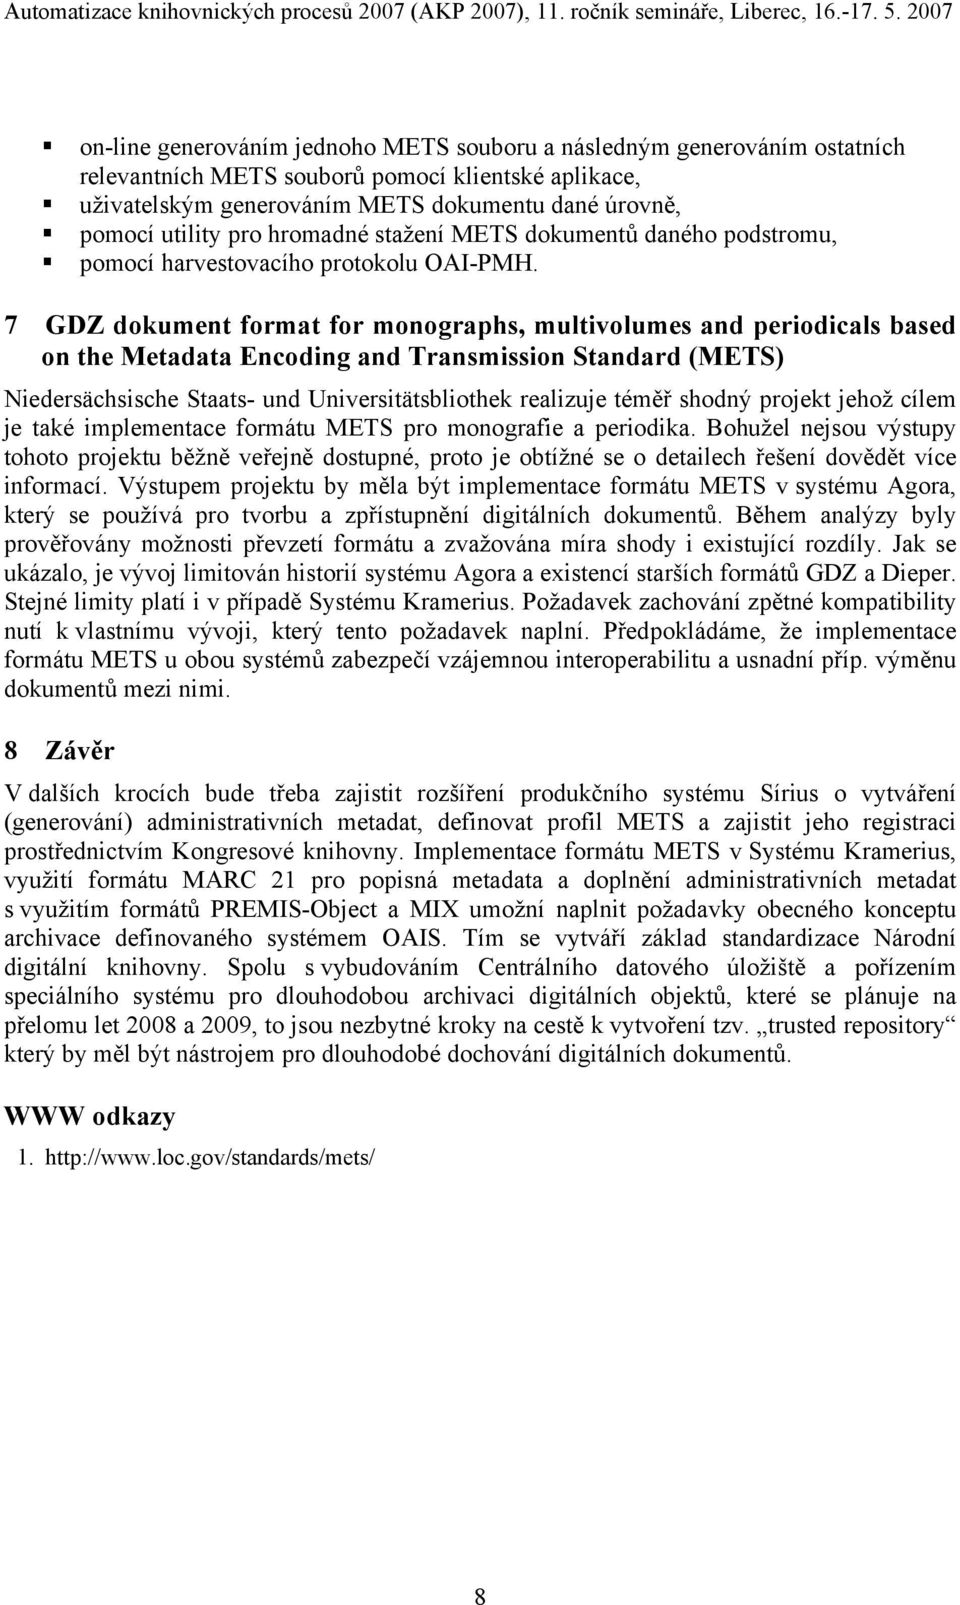 7 GDZ dokument format for monographs, multivolumes and periodicals based on the Metadata Encoding and Transmission Standard (METS) Niedersächsische Staats- und Universitätsbliothek realizuje téměř